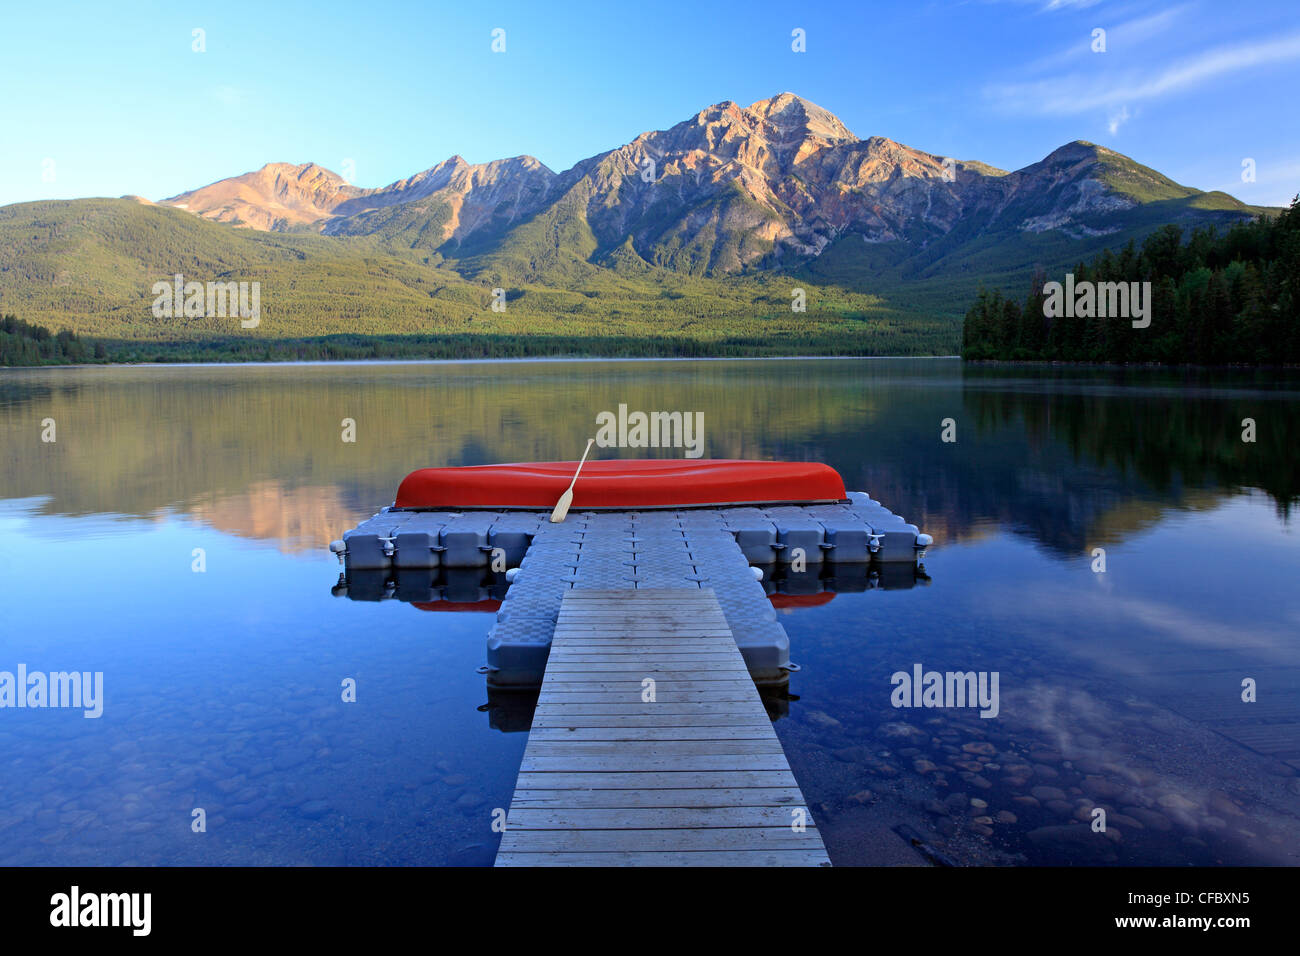 Red canoe sur dock à Pyramid Lake avec Pyramid Mountain, Jasper National Park, Alberta, Canada. Banque D'Images